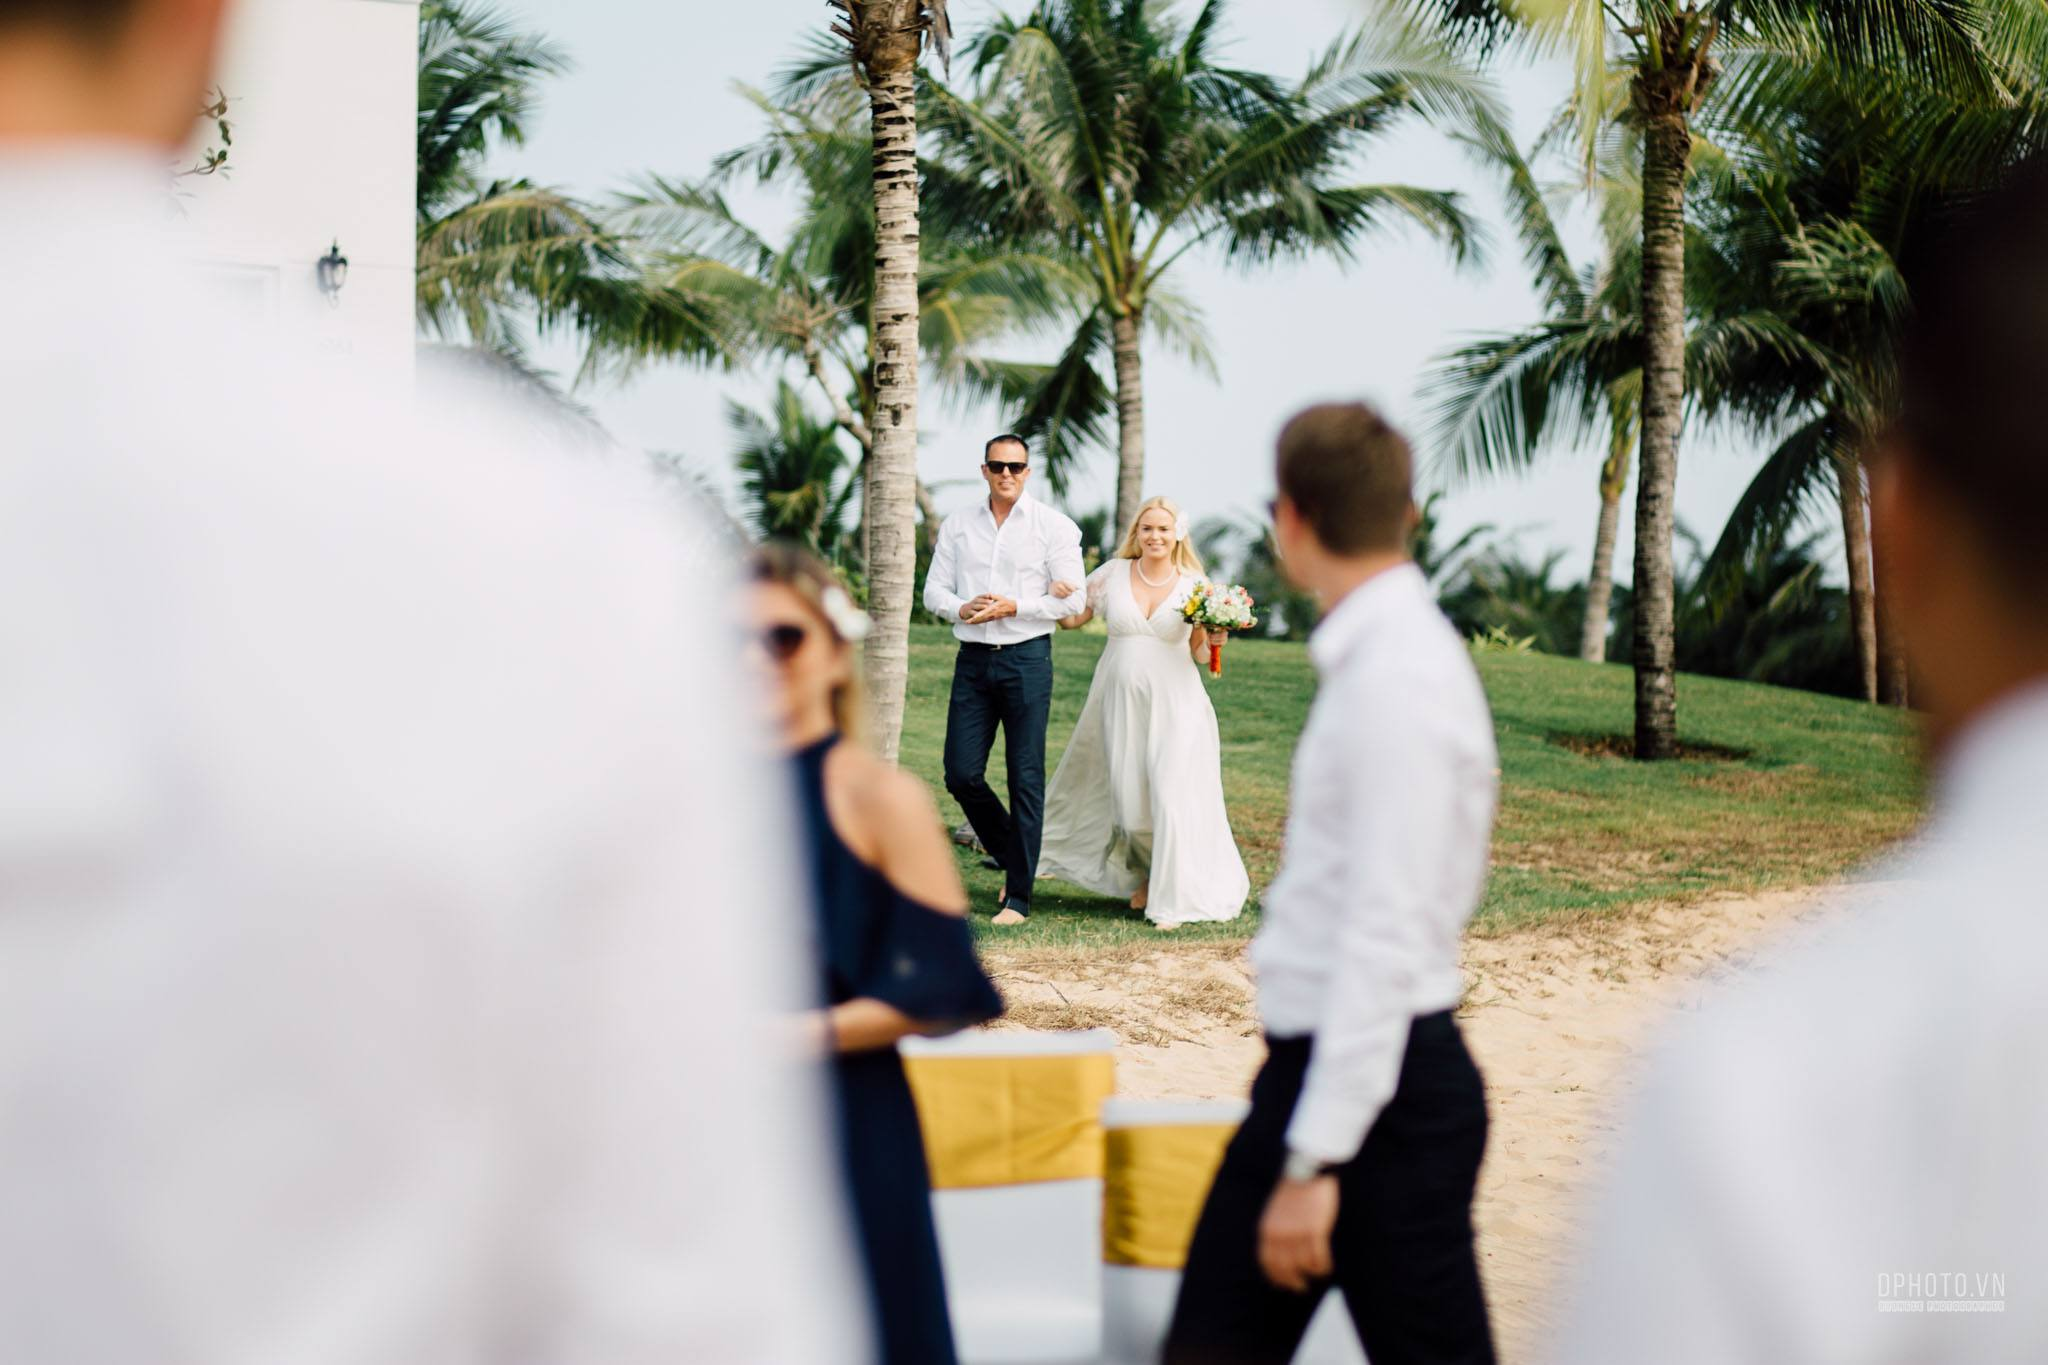 destination_wedding_phu_quoc_viet_nam_photographer_12